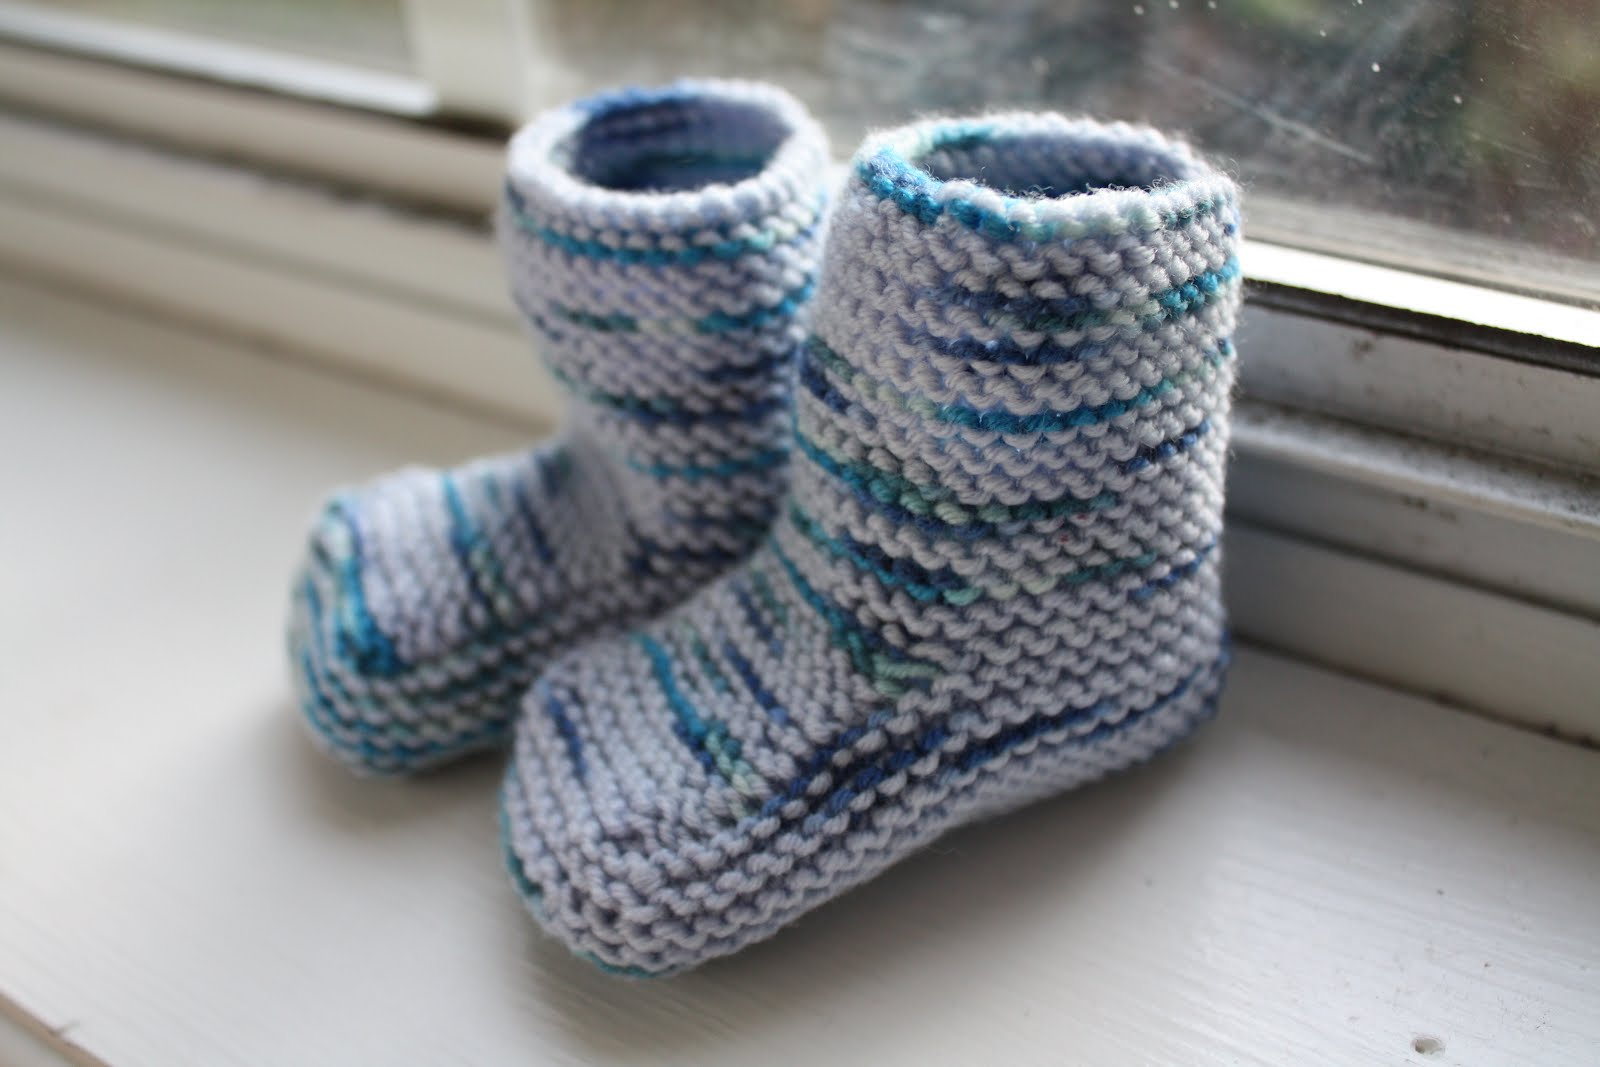 snapdragon crafts: more tiny knits